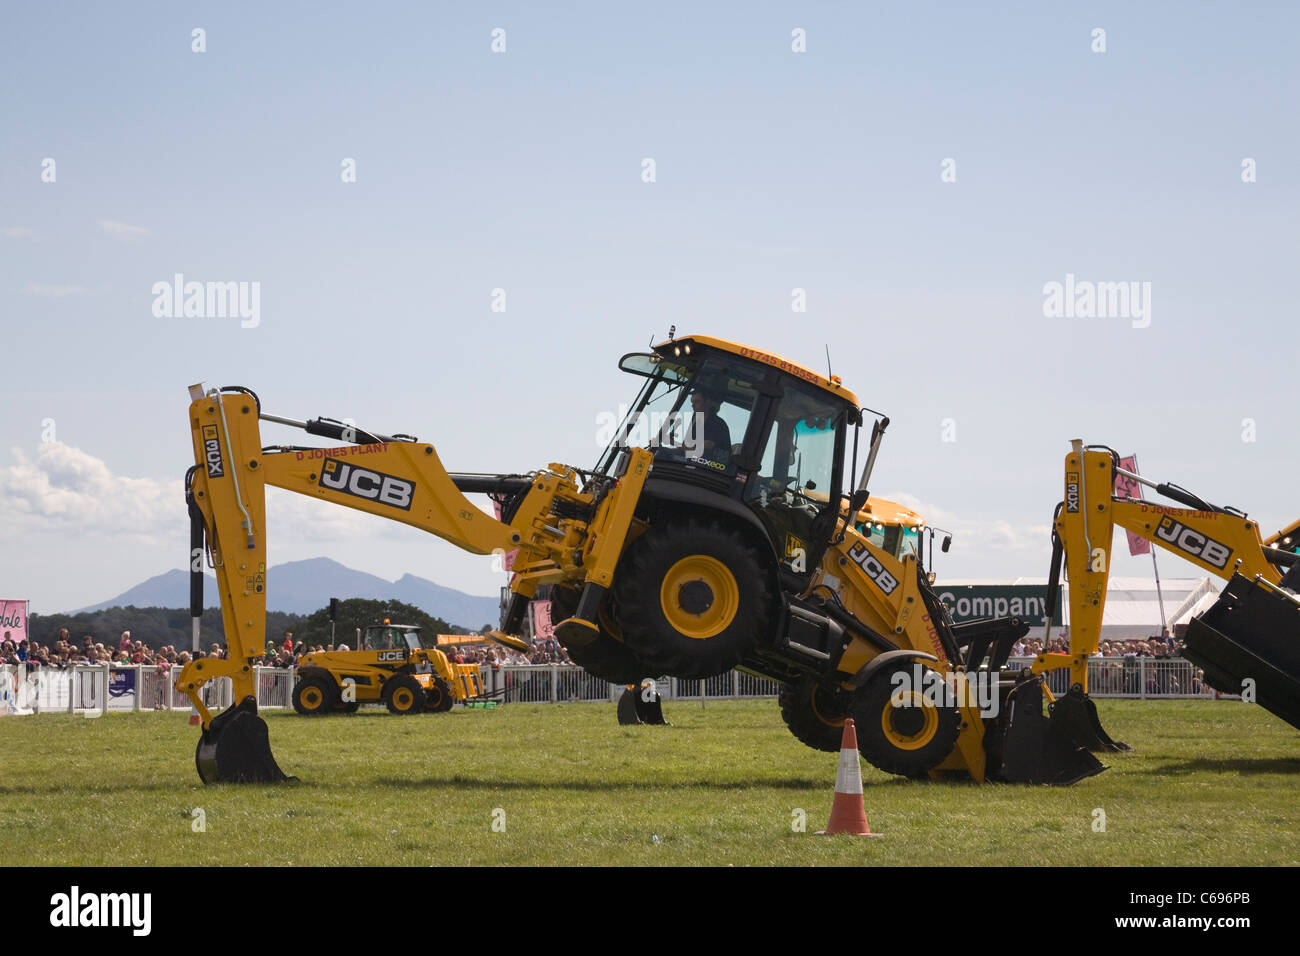 North Wales Demonstration showing the versatility of JCB diggers in showground of agricultural show - Stock Image